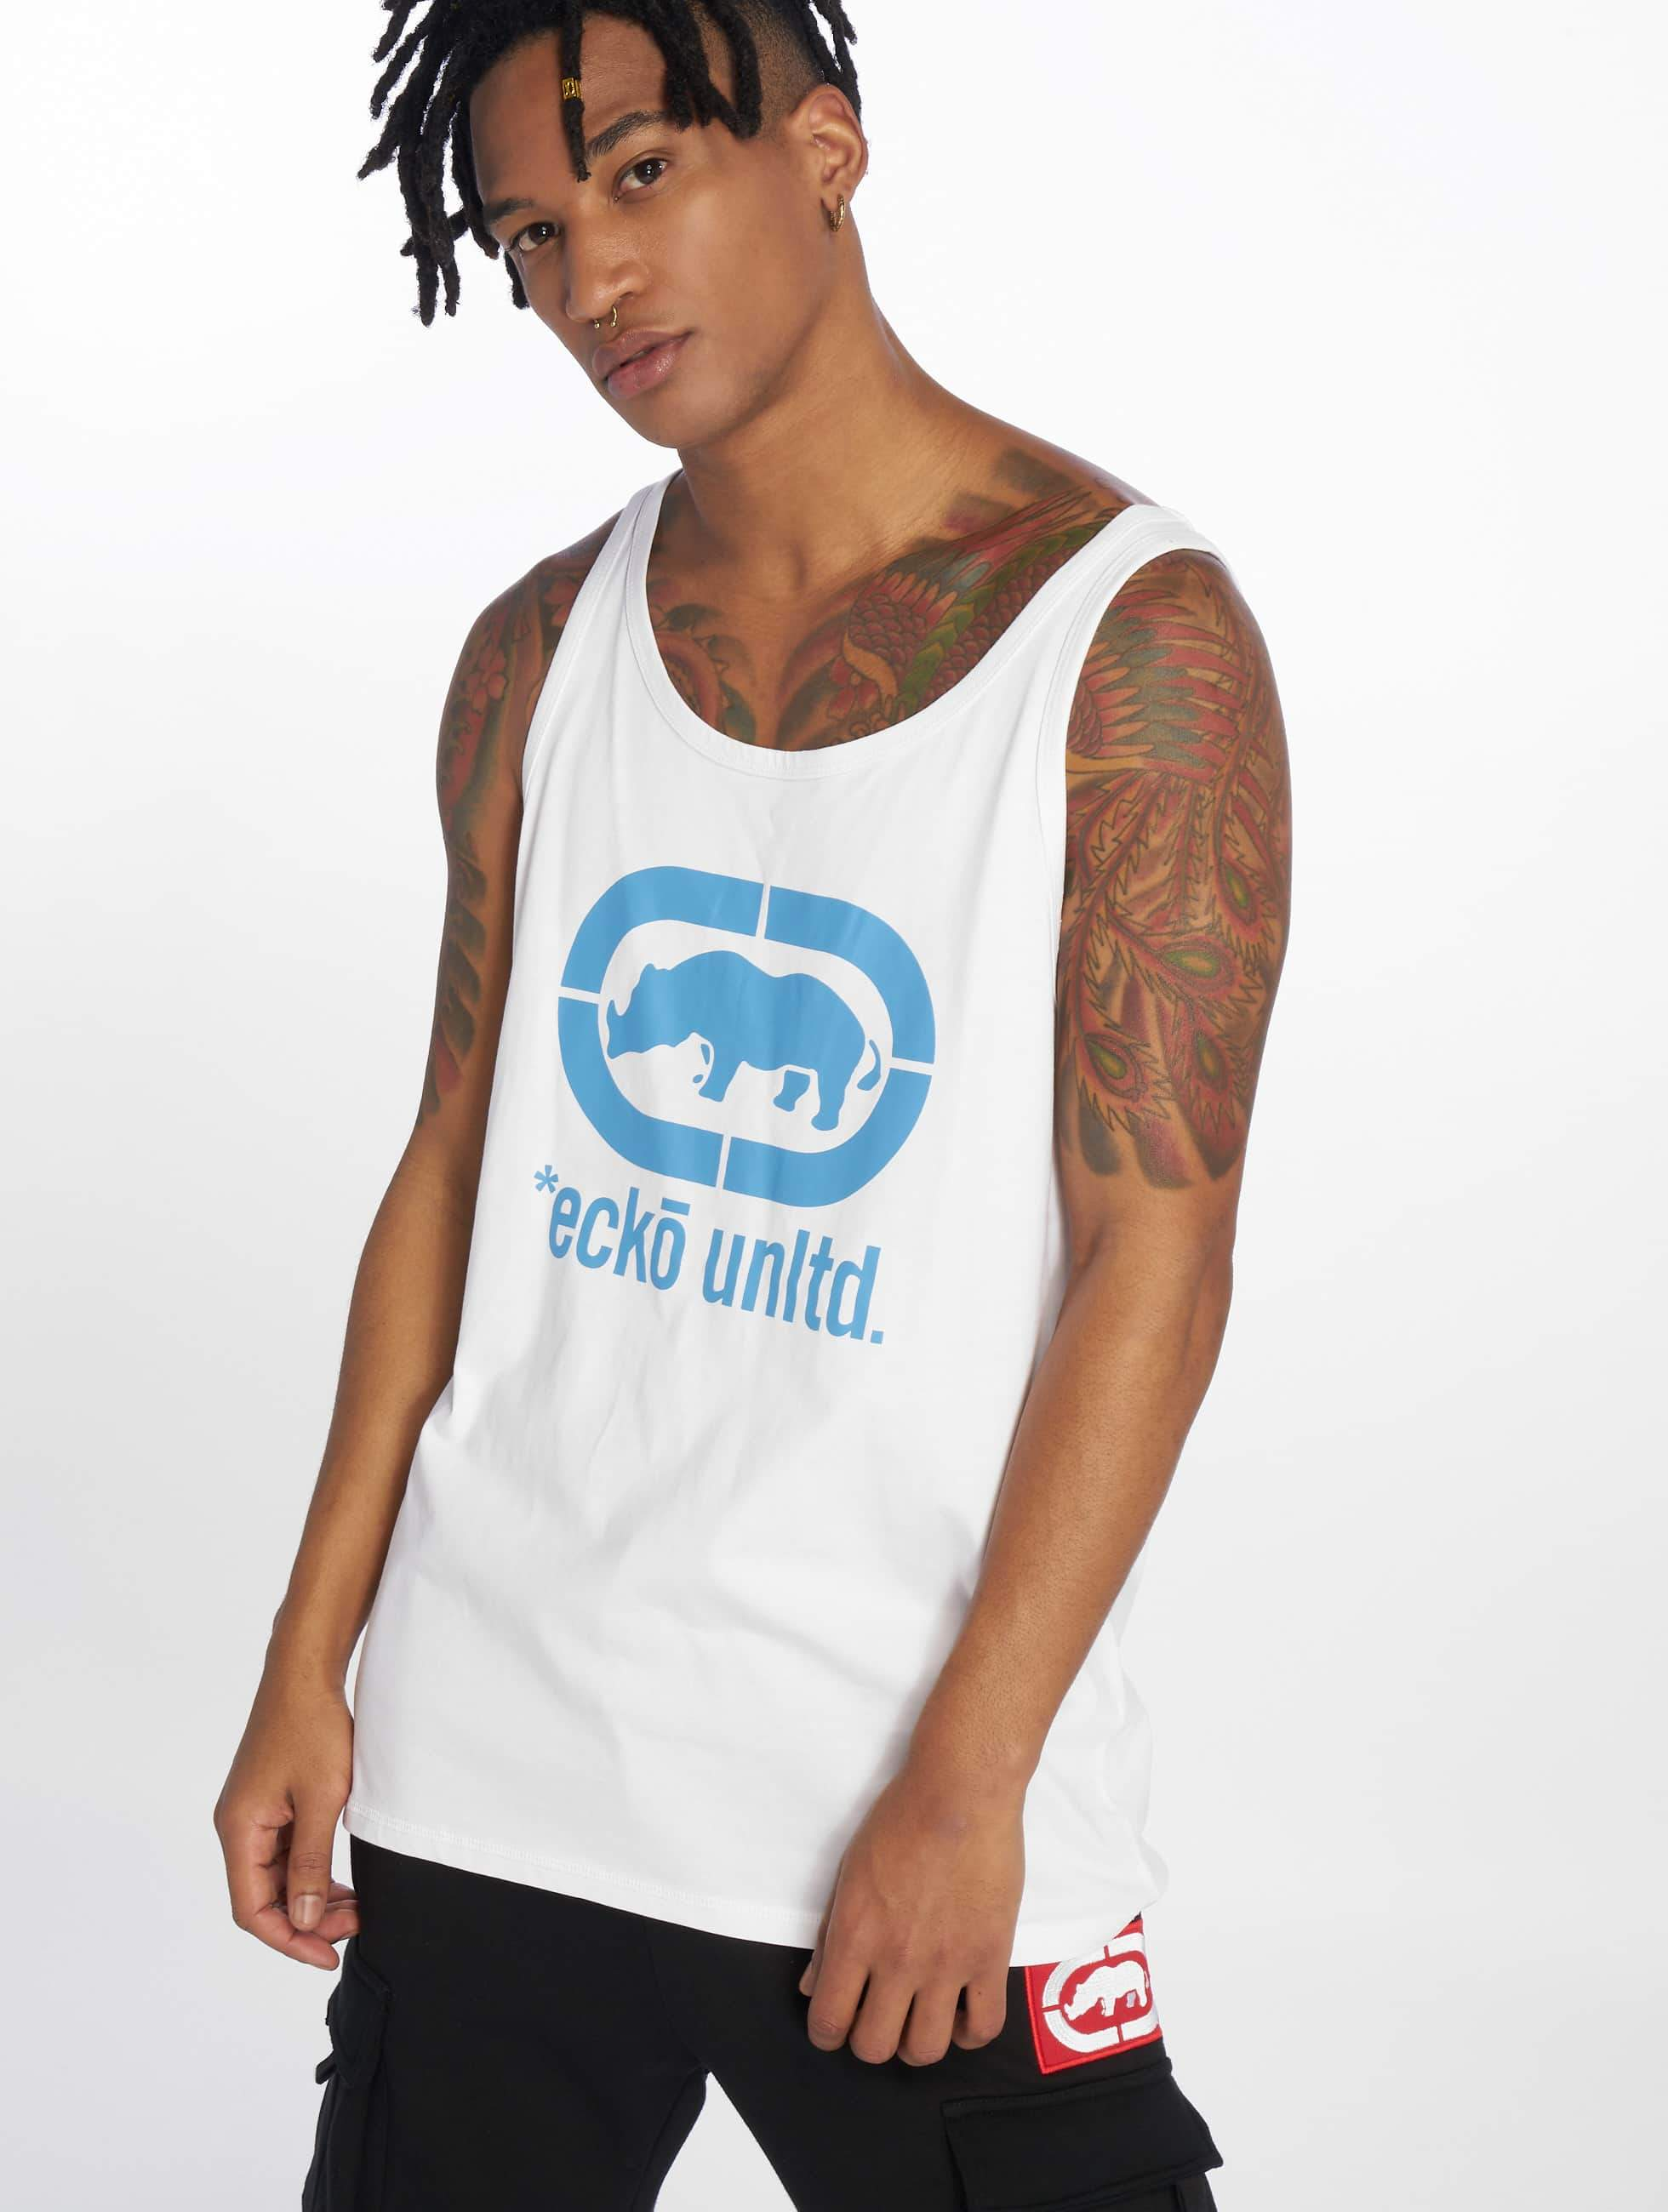 Ecko Unltd. / Tank Tops Best Buddy in white XL